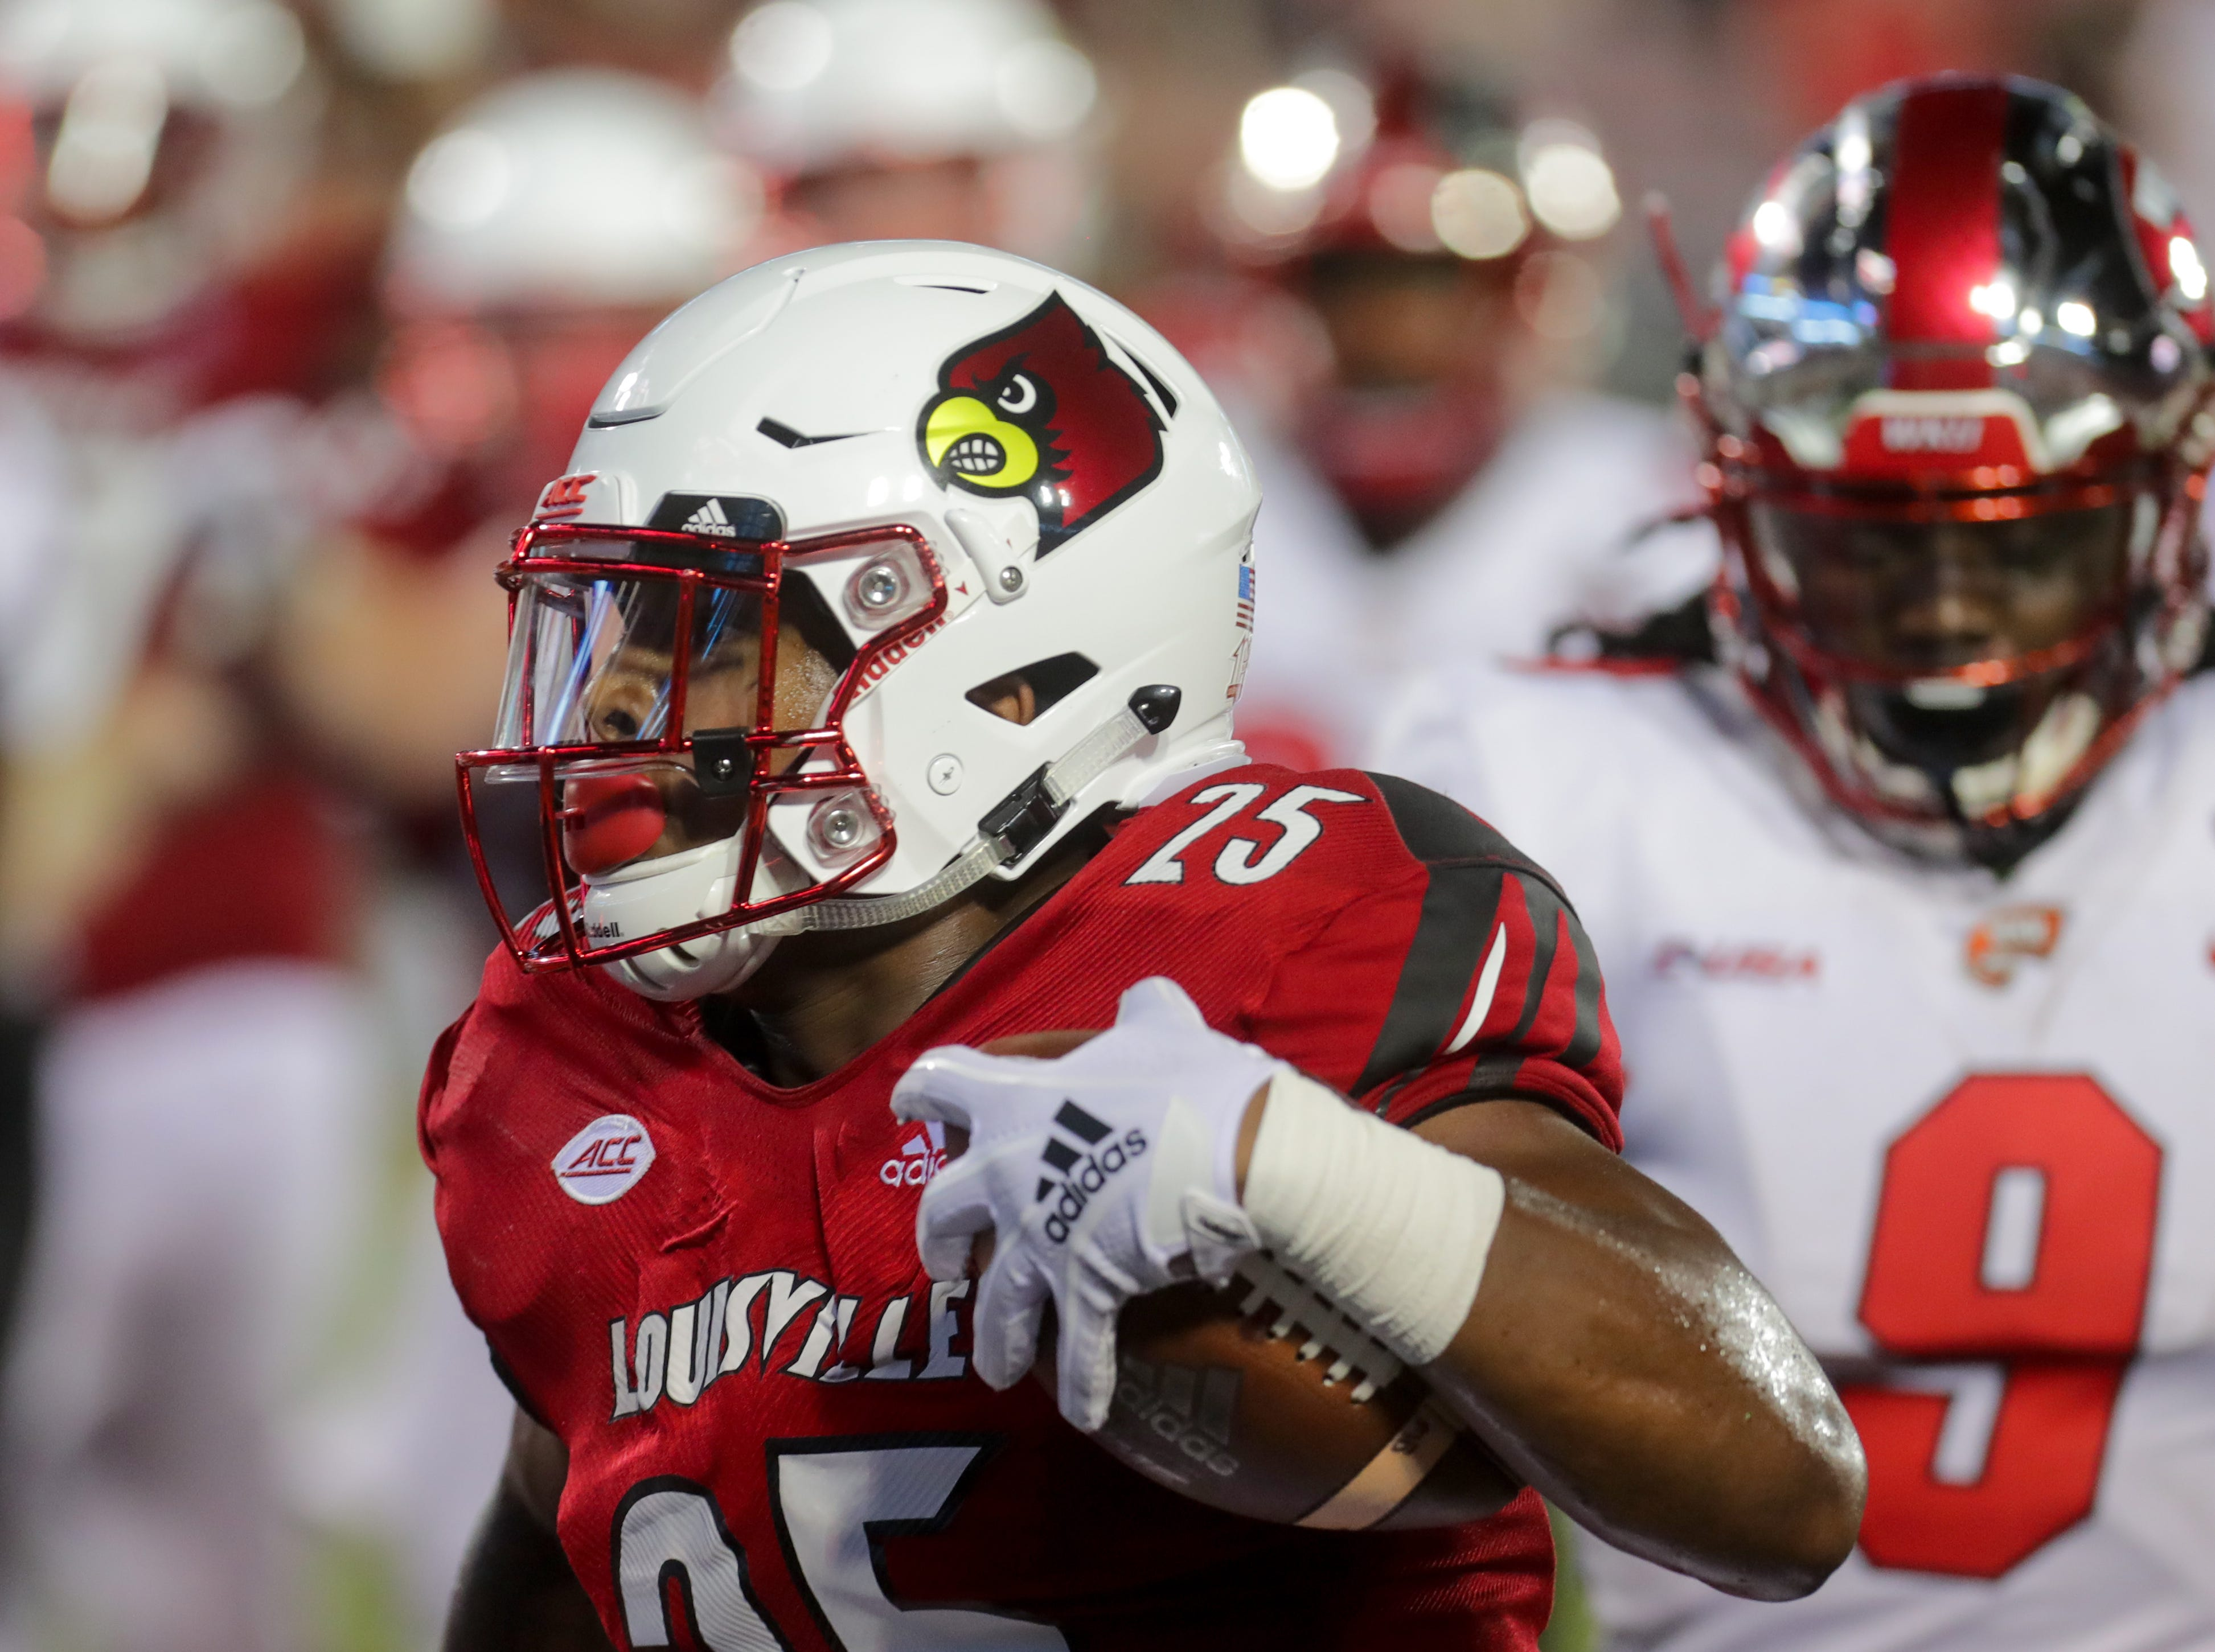 Louisville's Dae Williams scores his first touchdown of the night. 